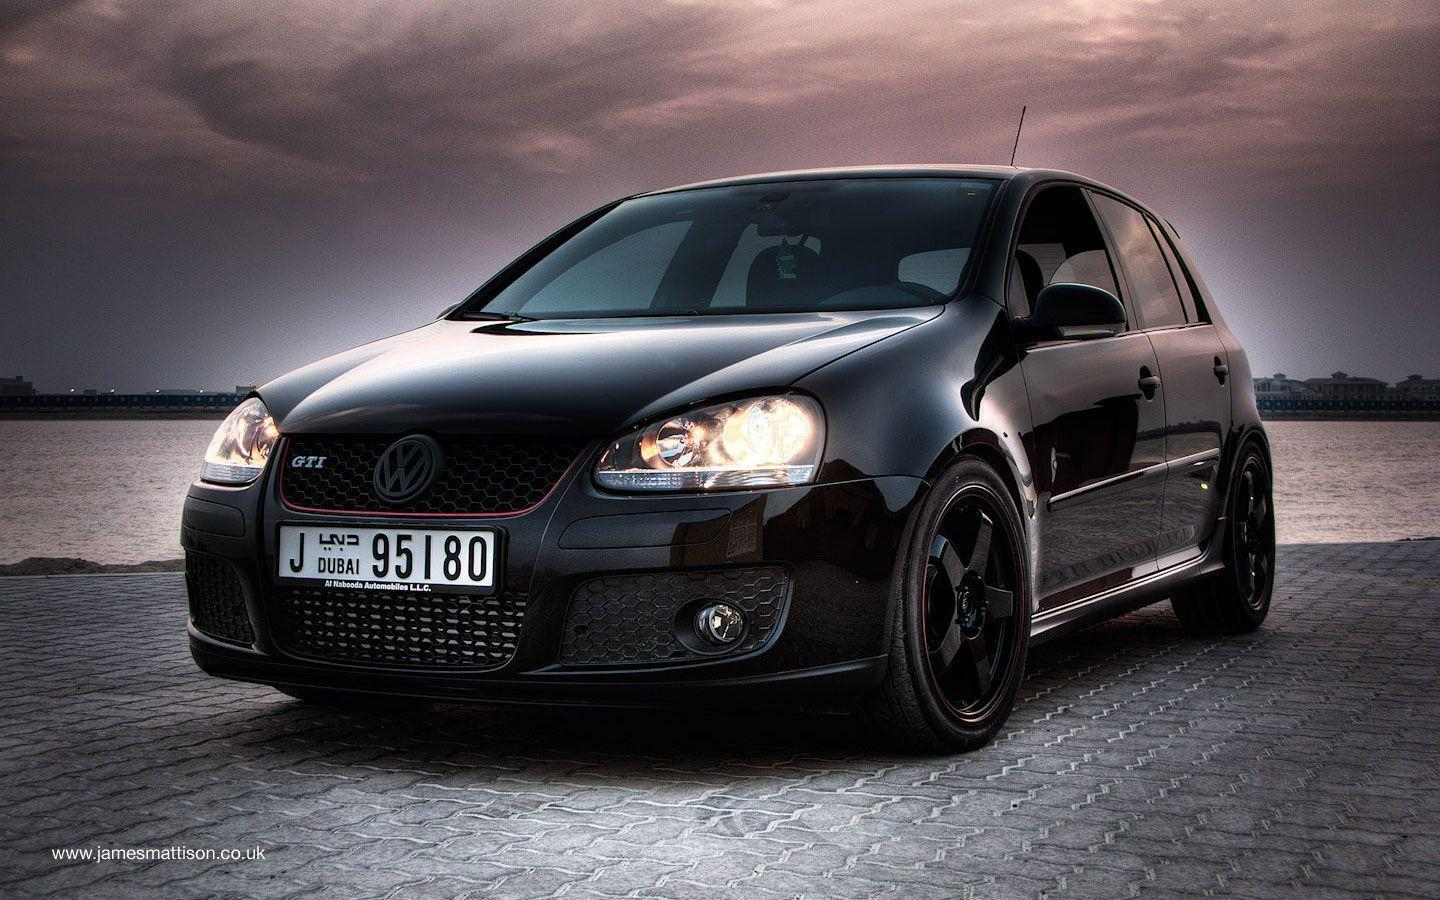 Golf Gti Wallpaper Hd Database 1440x900PX 72287